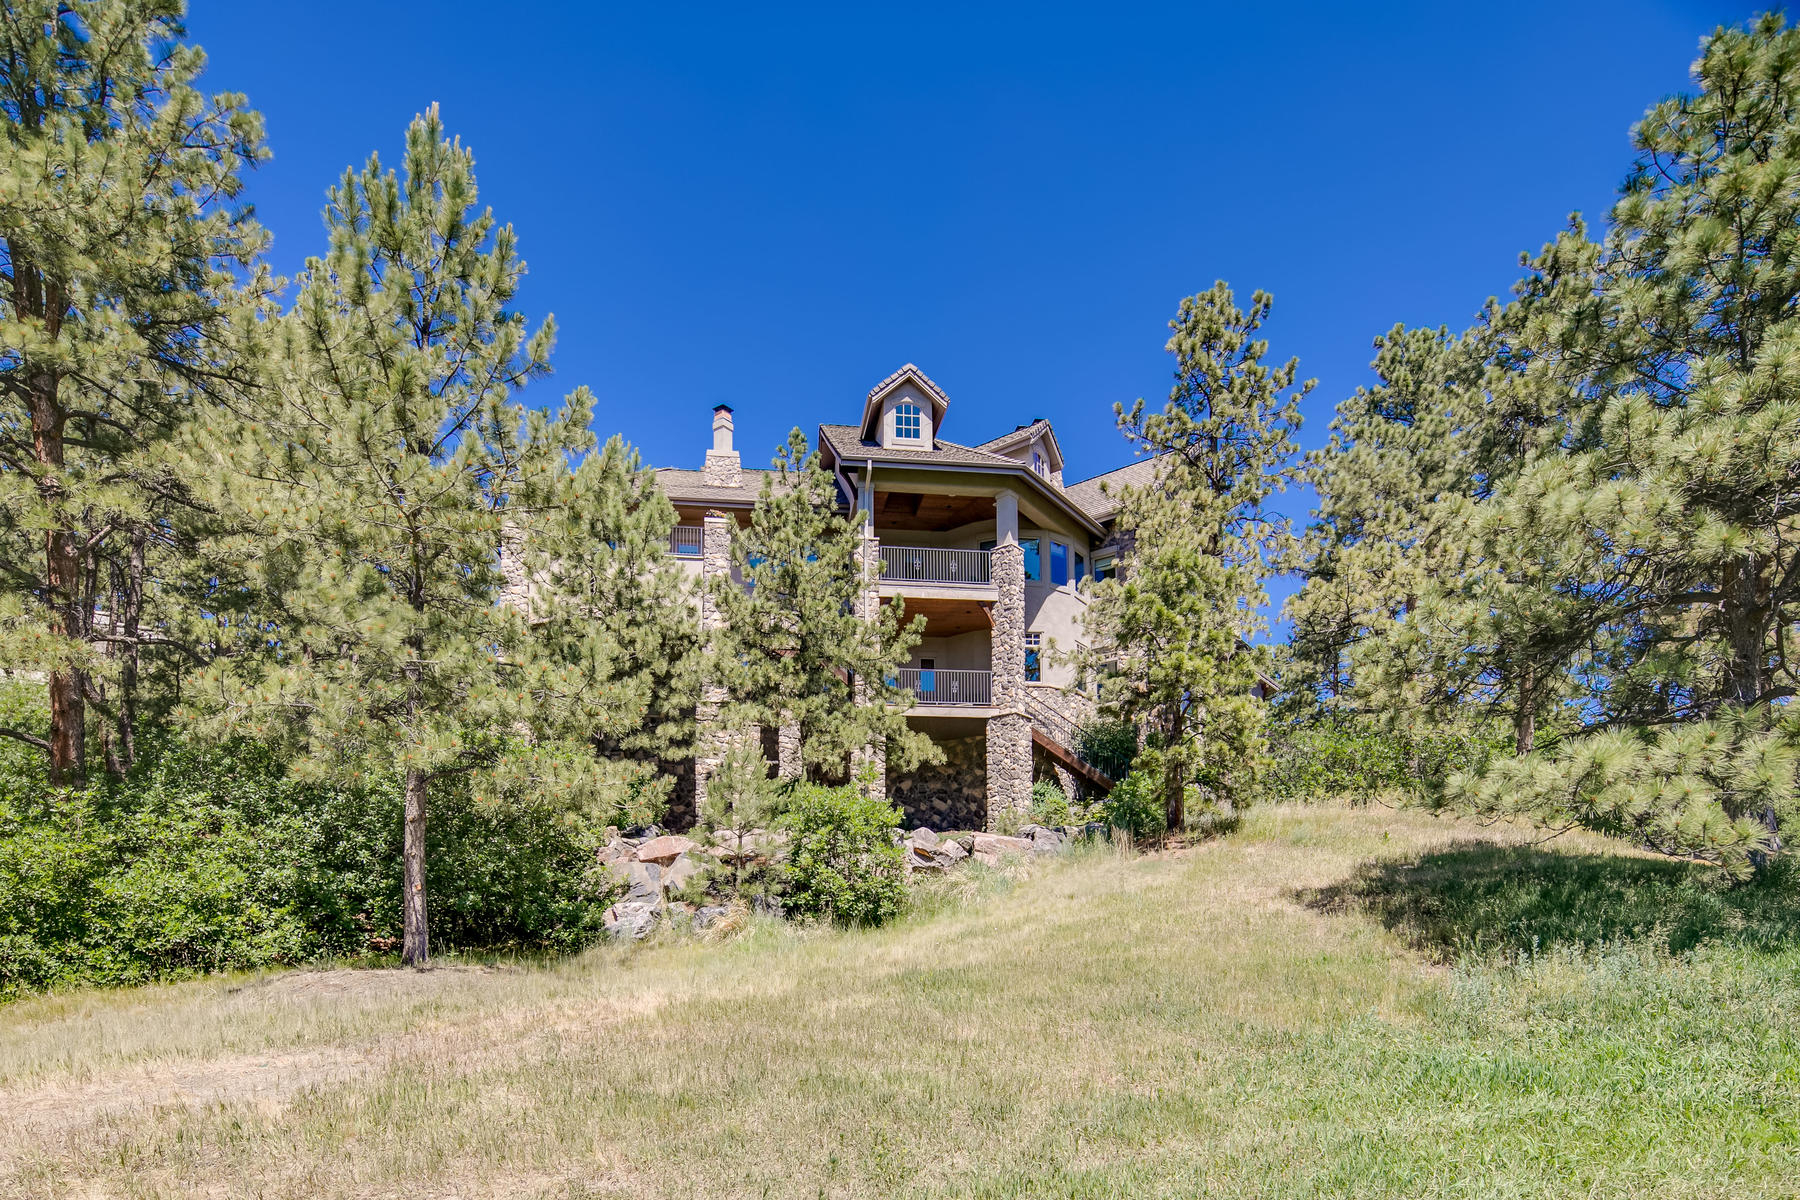 Additional photo for property listing at 102 Coulter Pl 102 Coulter Pl Castle Rock, Colorado 80108 United States